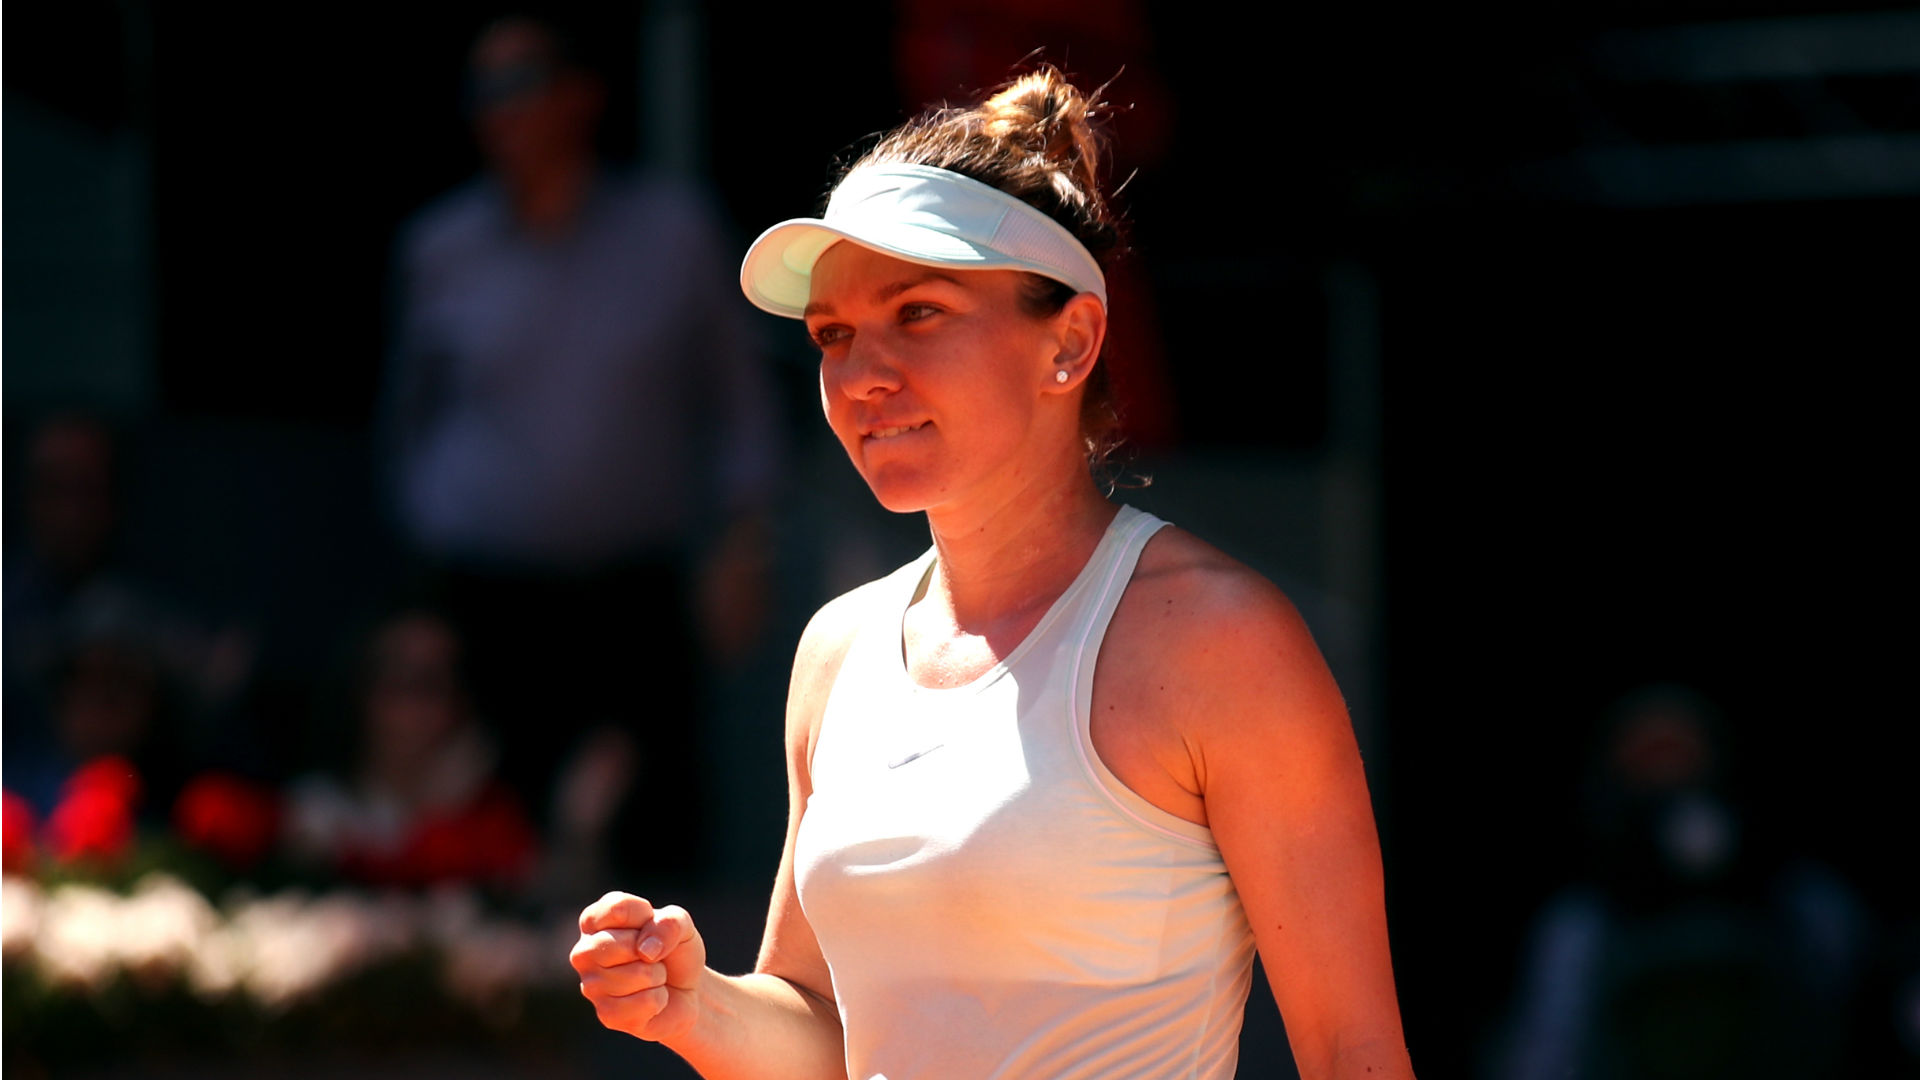 Halep relaxed ahead of French Open title defence